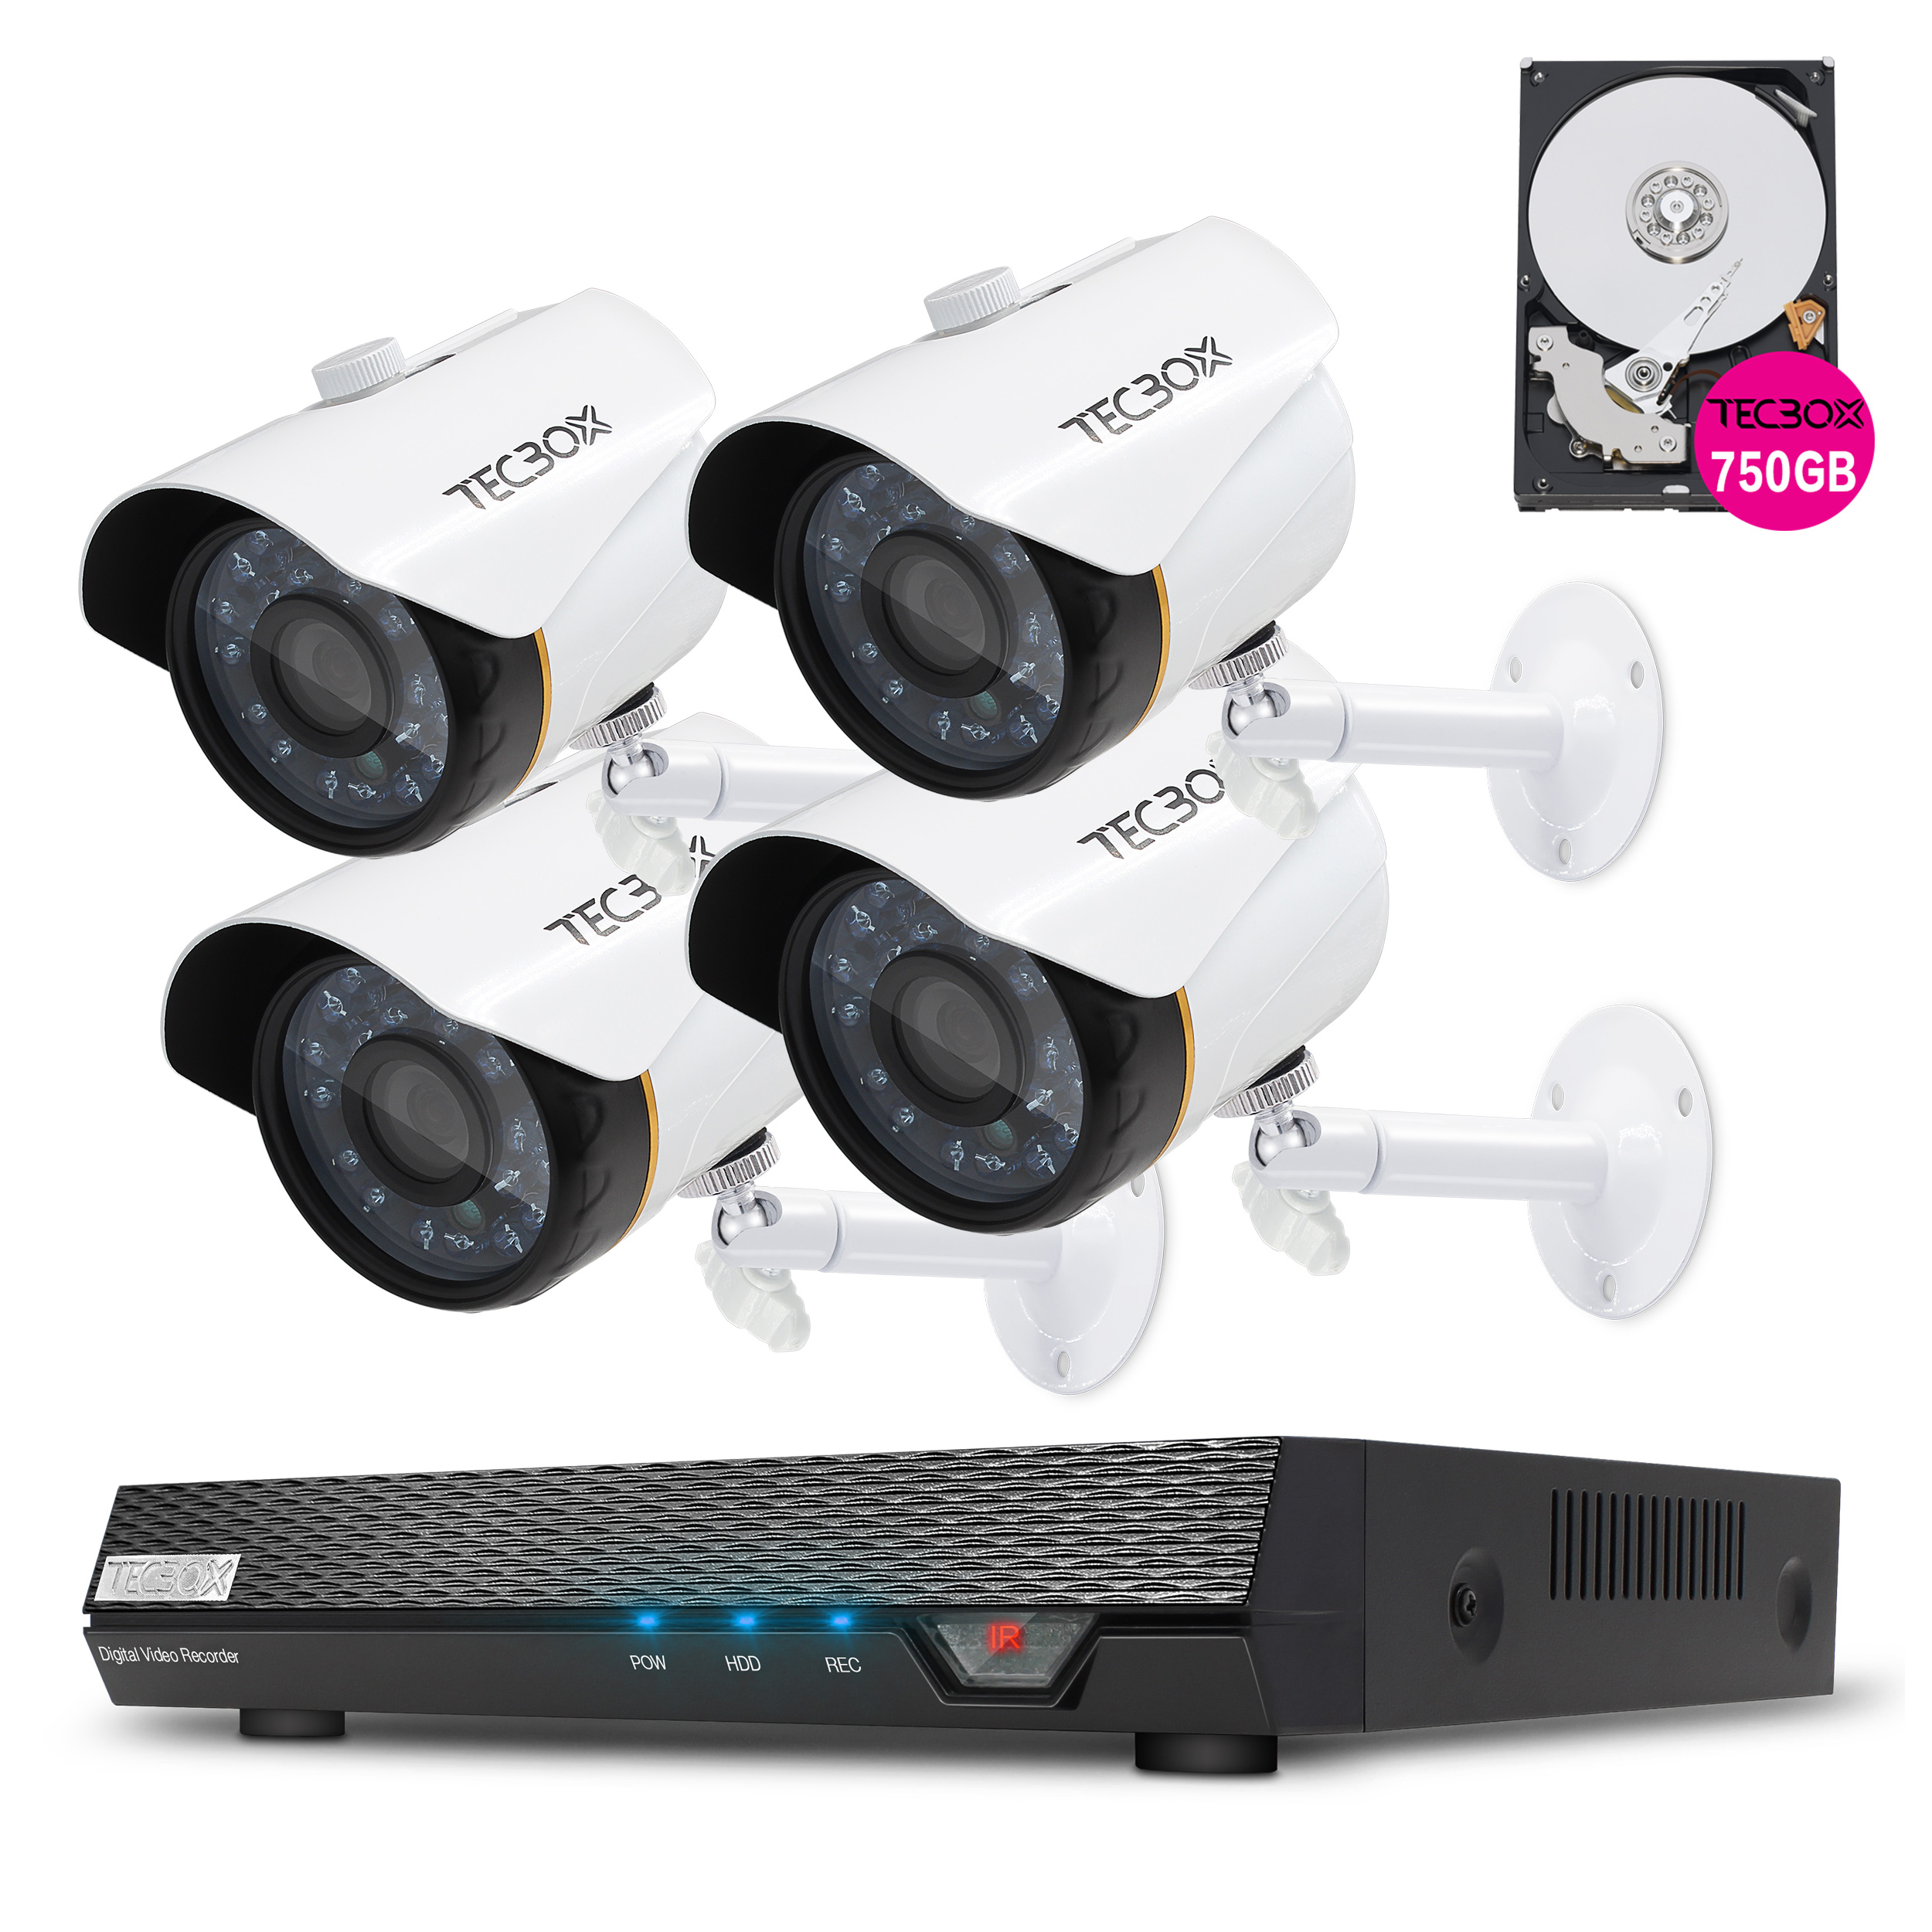 Tecbox 4 Channel Home Security Camera System HDMI AHD Video Recorder DVR 2.0MP 720P IP66 Indoor/Outdoor 65ft Night Vision Surveillance System 750GB HDD Pre-installed